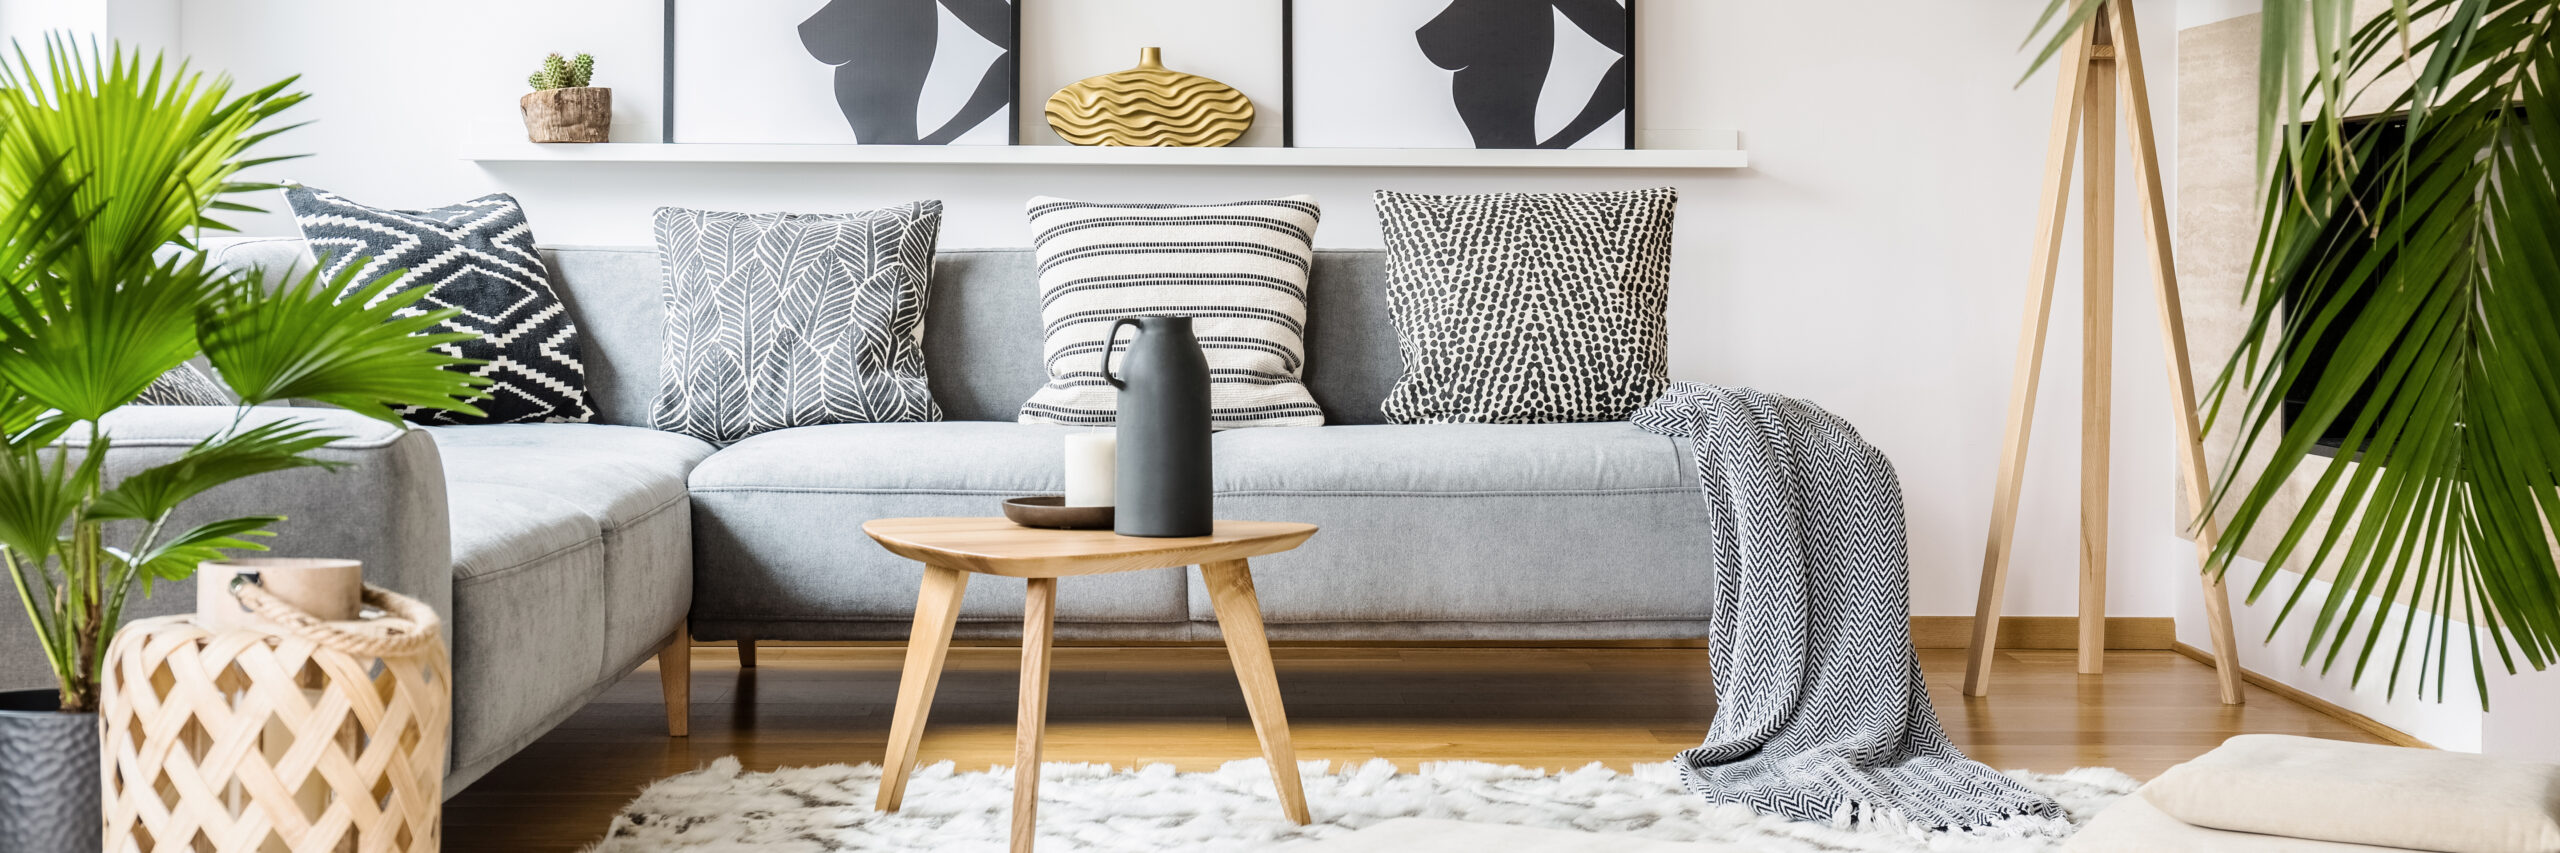 Spring Cleaning checklist - living room